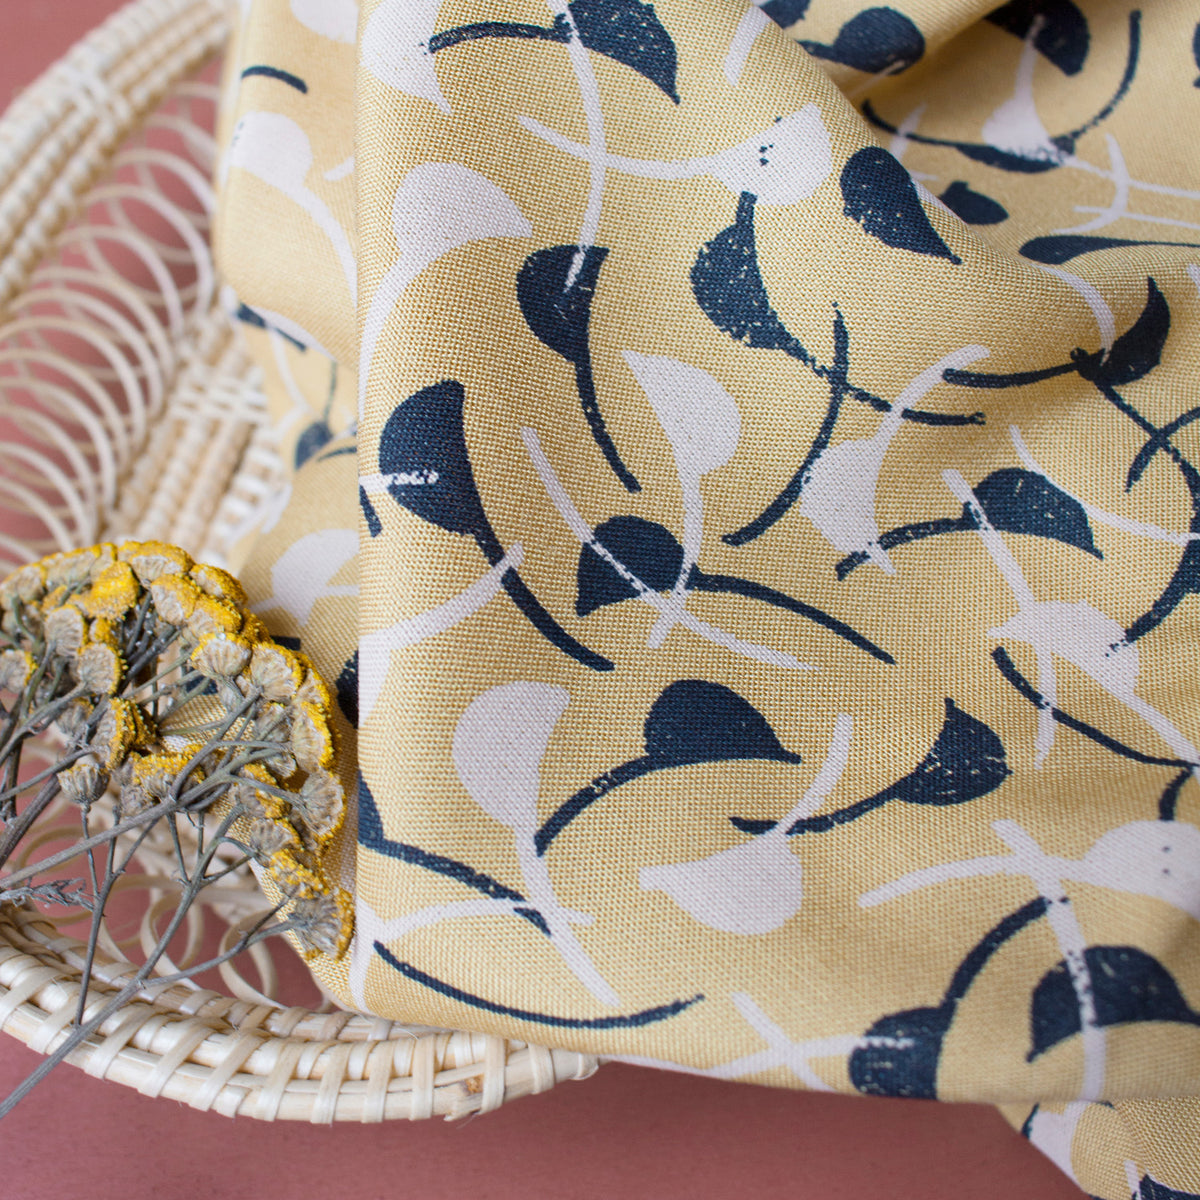 Atelier Brunette - Windy Mustard - Viscose - MaaiDesign